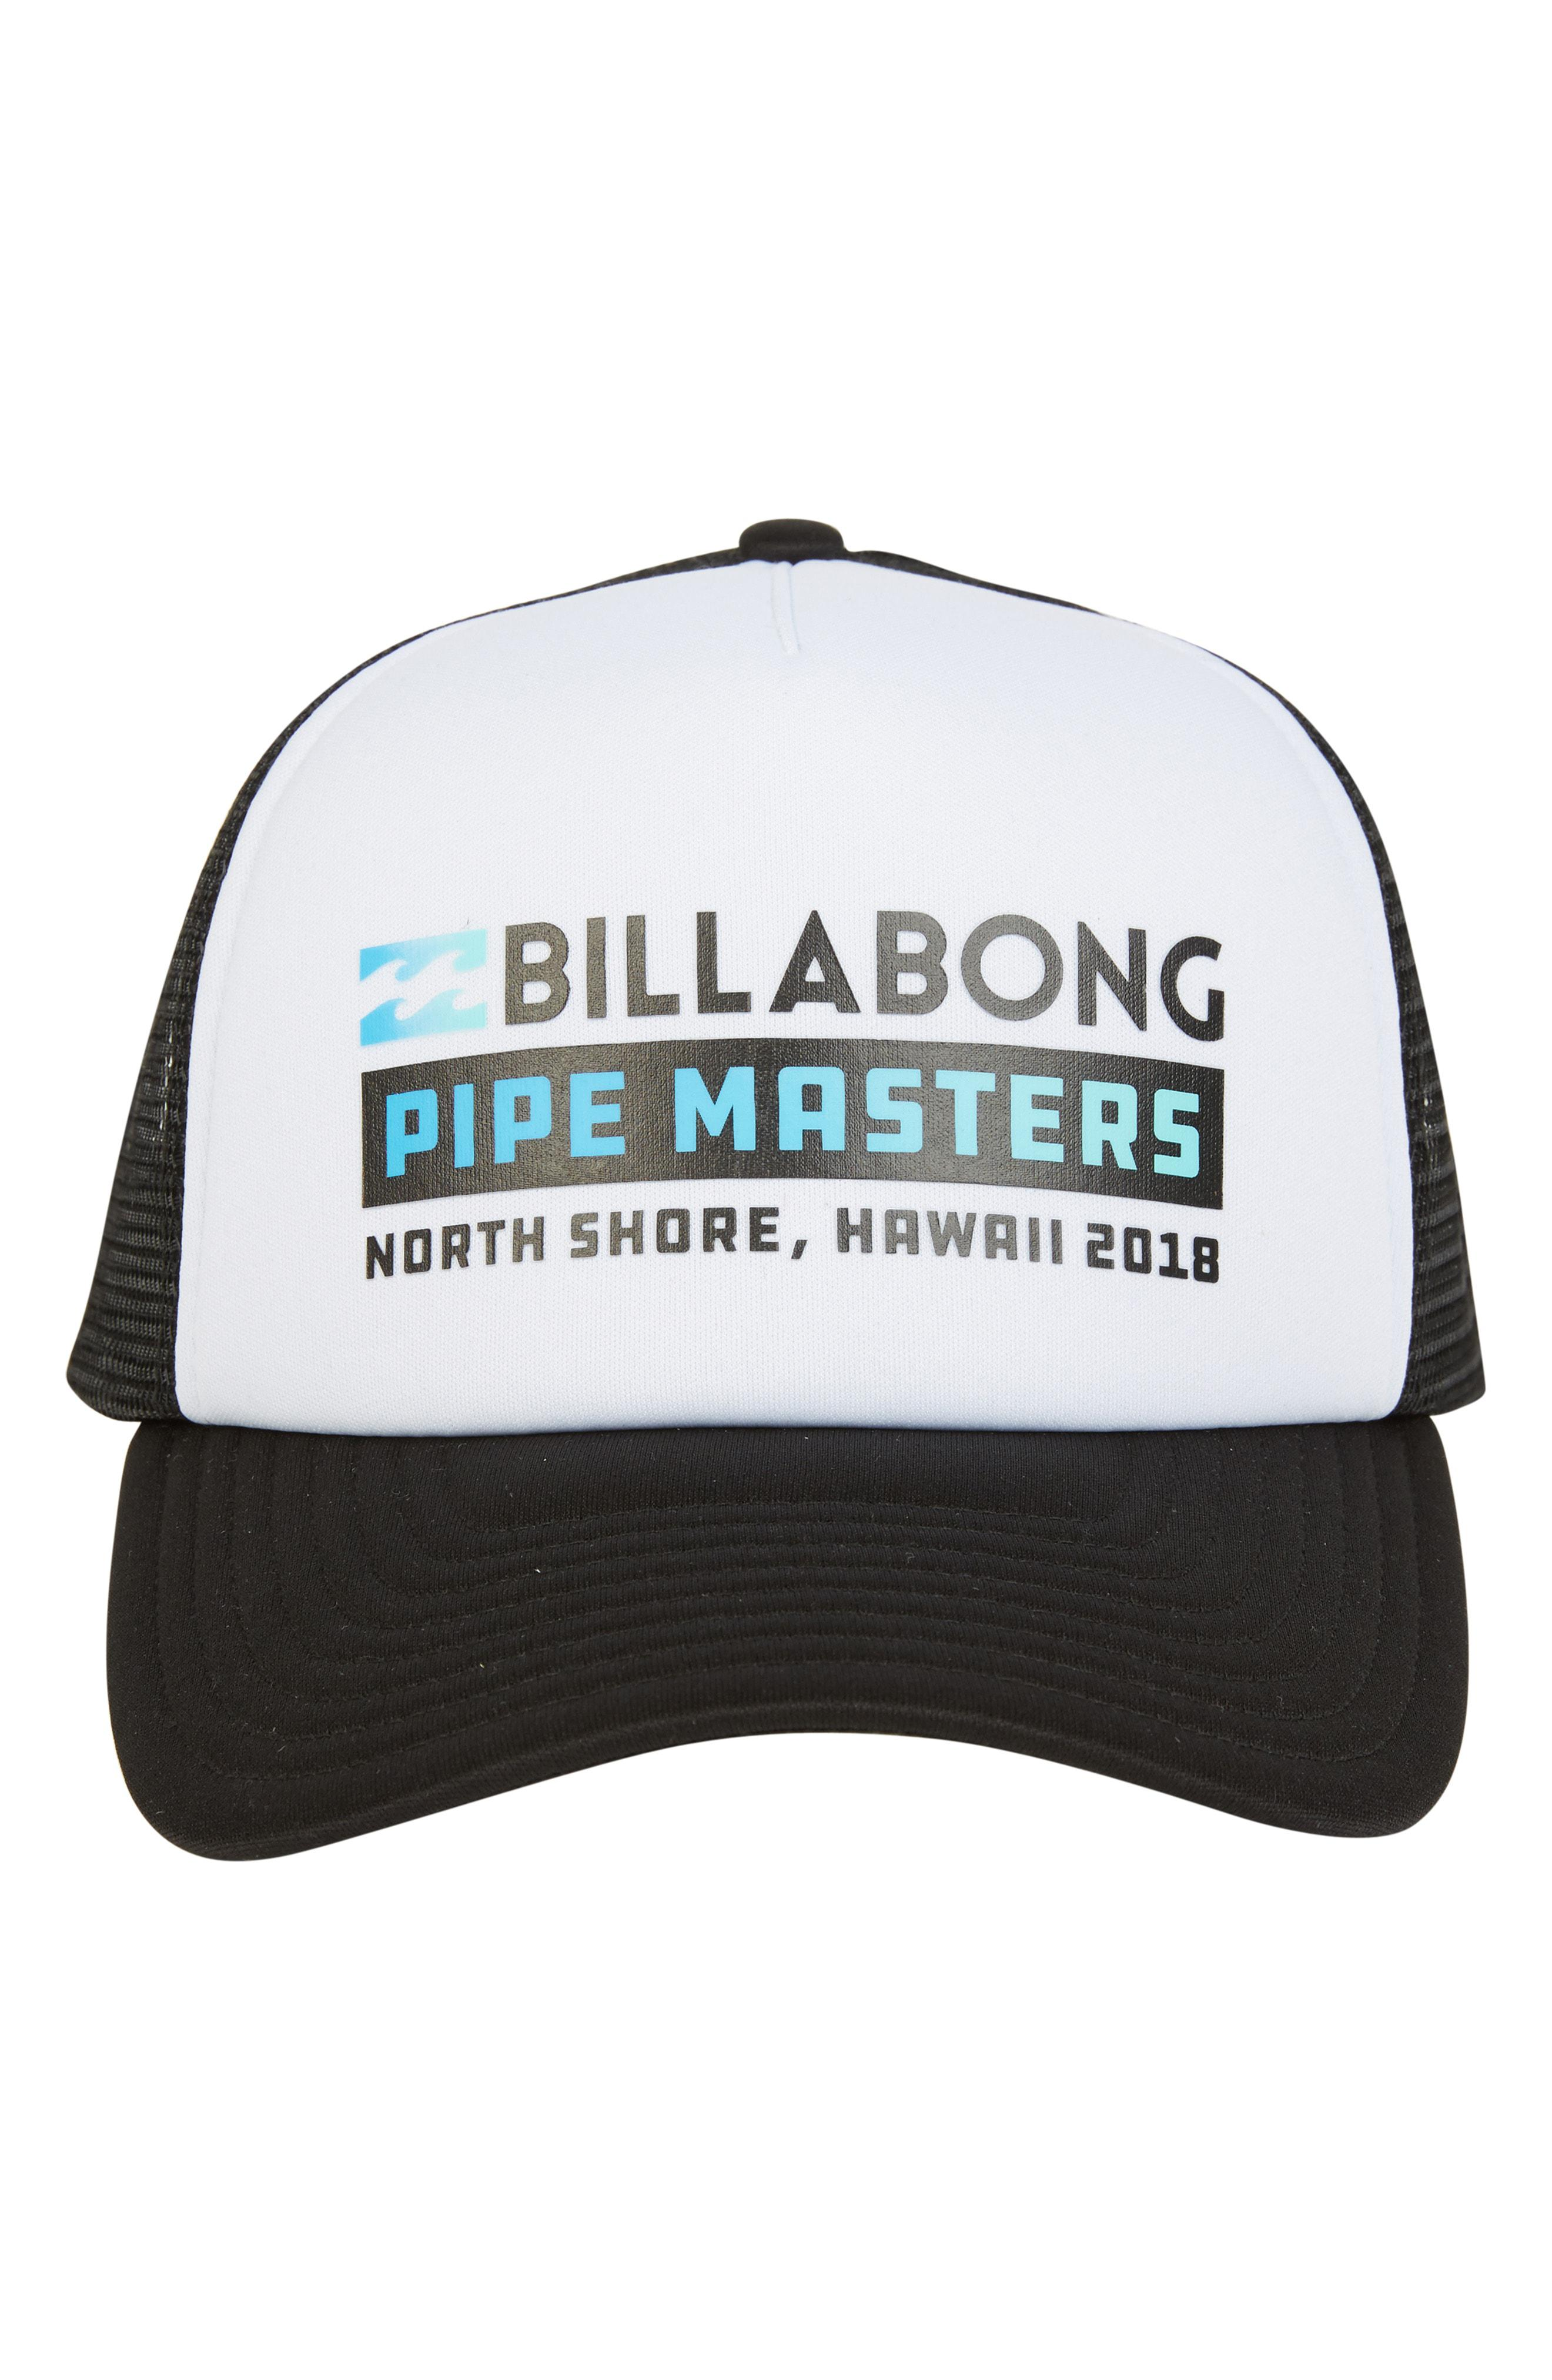 Lyst - Billabong Pipe Masters Trucker Hat in White for Men eb6f72e20453